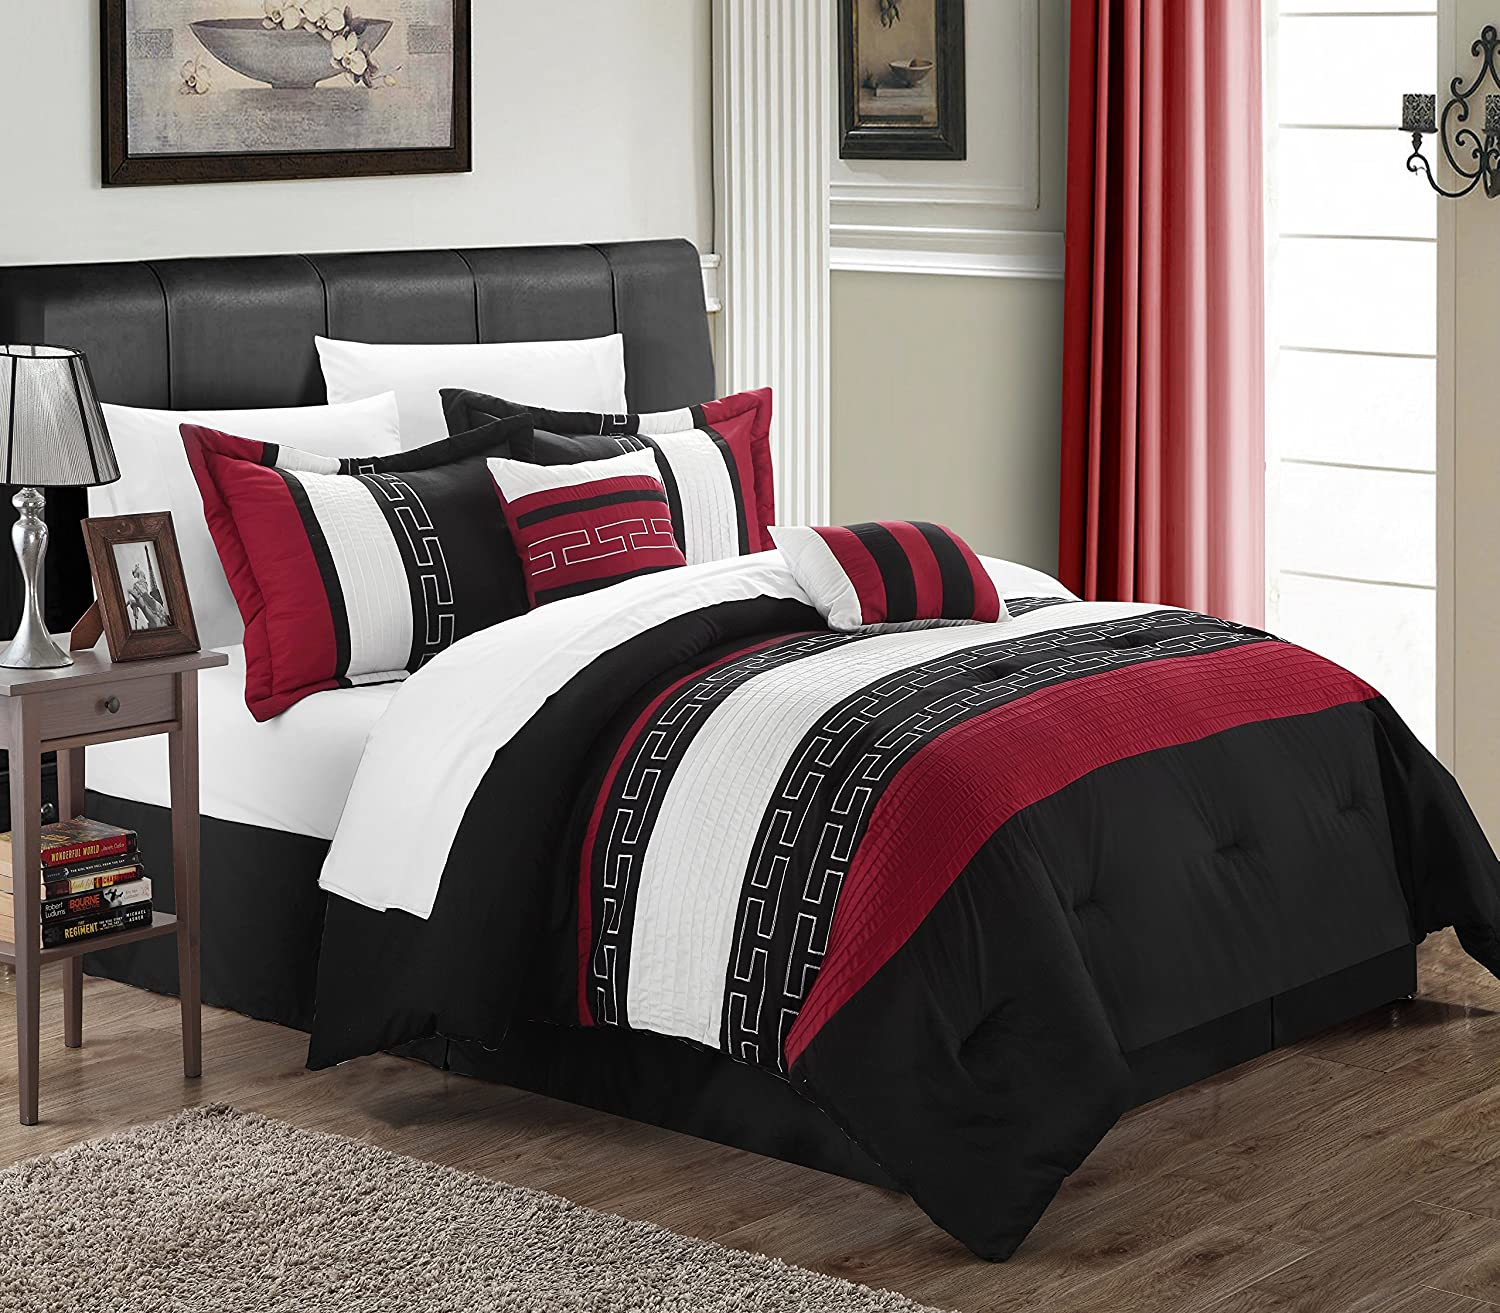 Chic Home Carlton 6-Piece Comforter Set, King Size, Black CS1213-212-AN